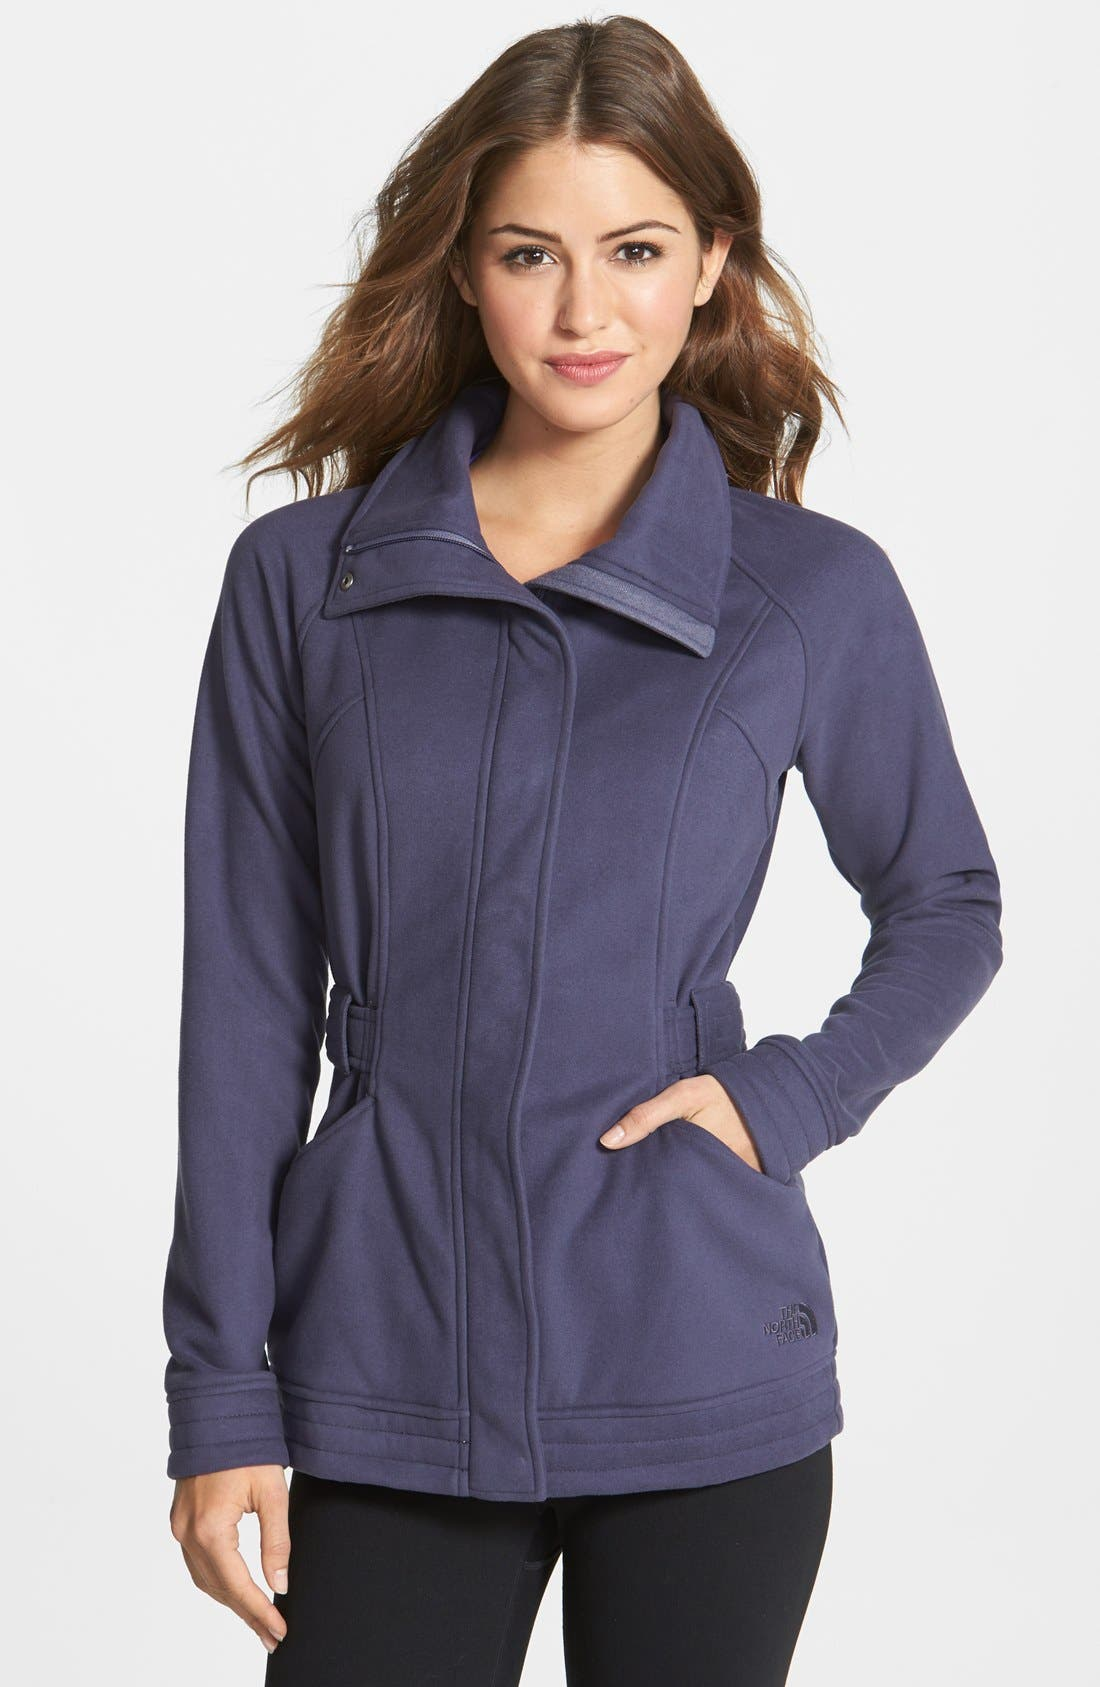 Main Image - The North Face 'Avery' Fleece Jacket (Nordstrom Exclusive)